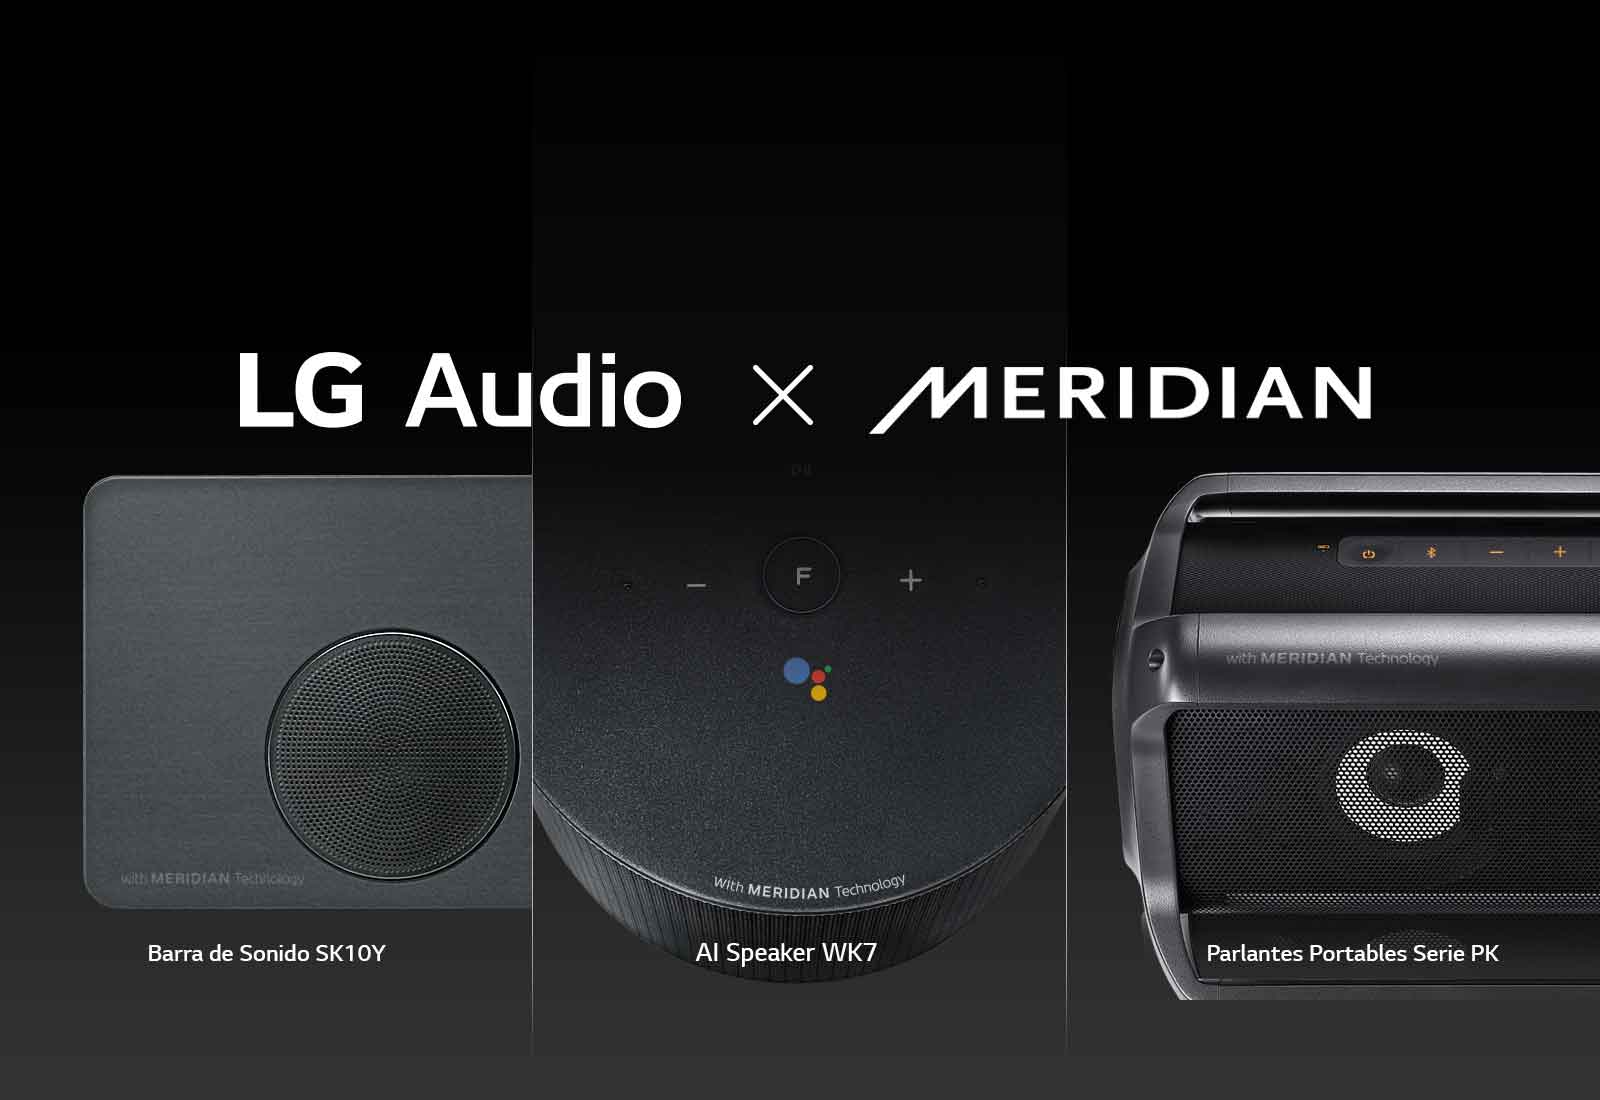 02_PK7_LG_partners_with_Meridian_Audior_Desktop